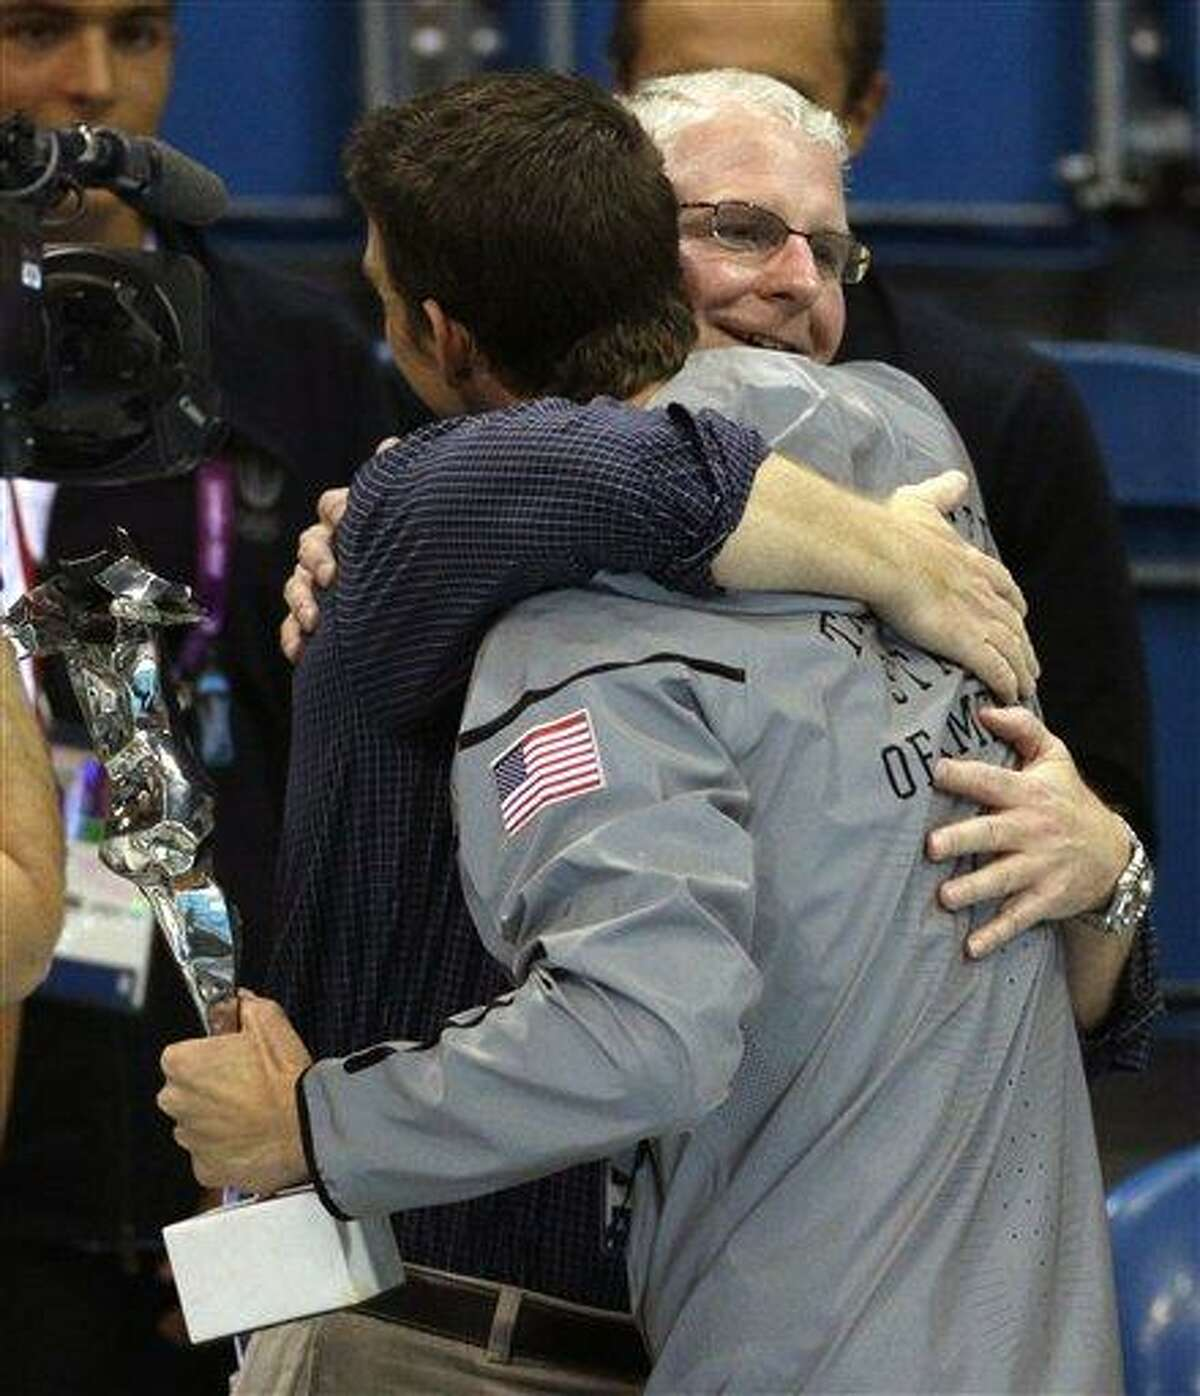 United States' Michael Phelps receives a hug from his coach Bob Bowman as he holds a trophy for the most decorated olympian at the Aquatics Centre in the Olympic Park during the 2012 Summer Olympics in London, Saturday, Aug. 4, 2012. Bob Bowman has been there every step of the way for Michael Phelps -- through all the gold medals, world records, championships and, yes, even the occasional missteps. (AP Photo/Michael Sohn)